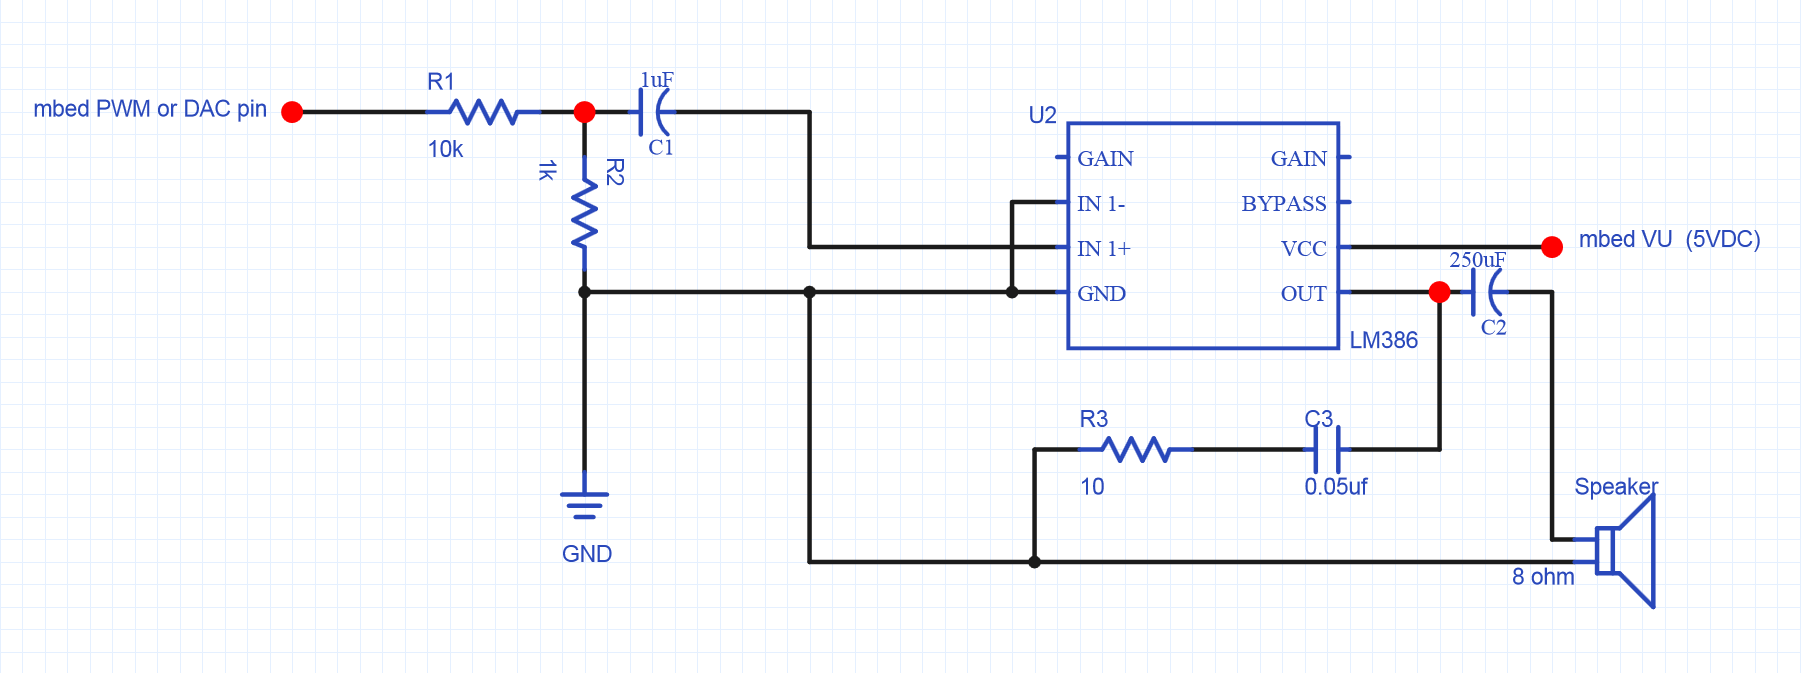 Using A Speaker For Audio Output Mbed Pwm Wiring Diagram Price Sign Lm386 Amplifier Circuit Small 8ohm 5w Smaller Value R1 Can Be Used To Increase The Volume